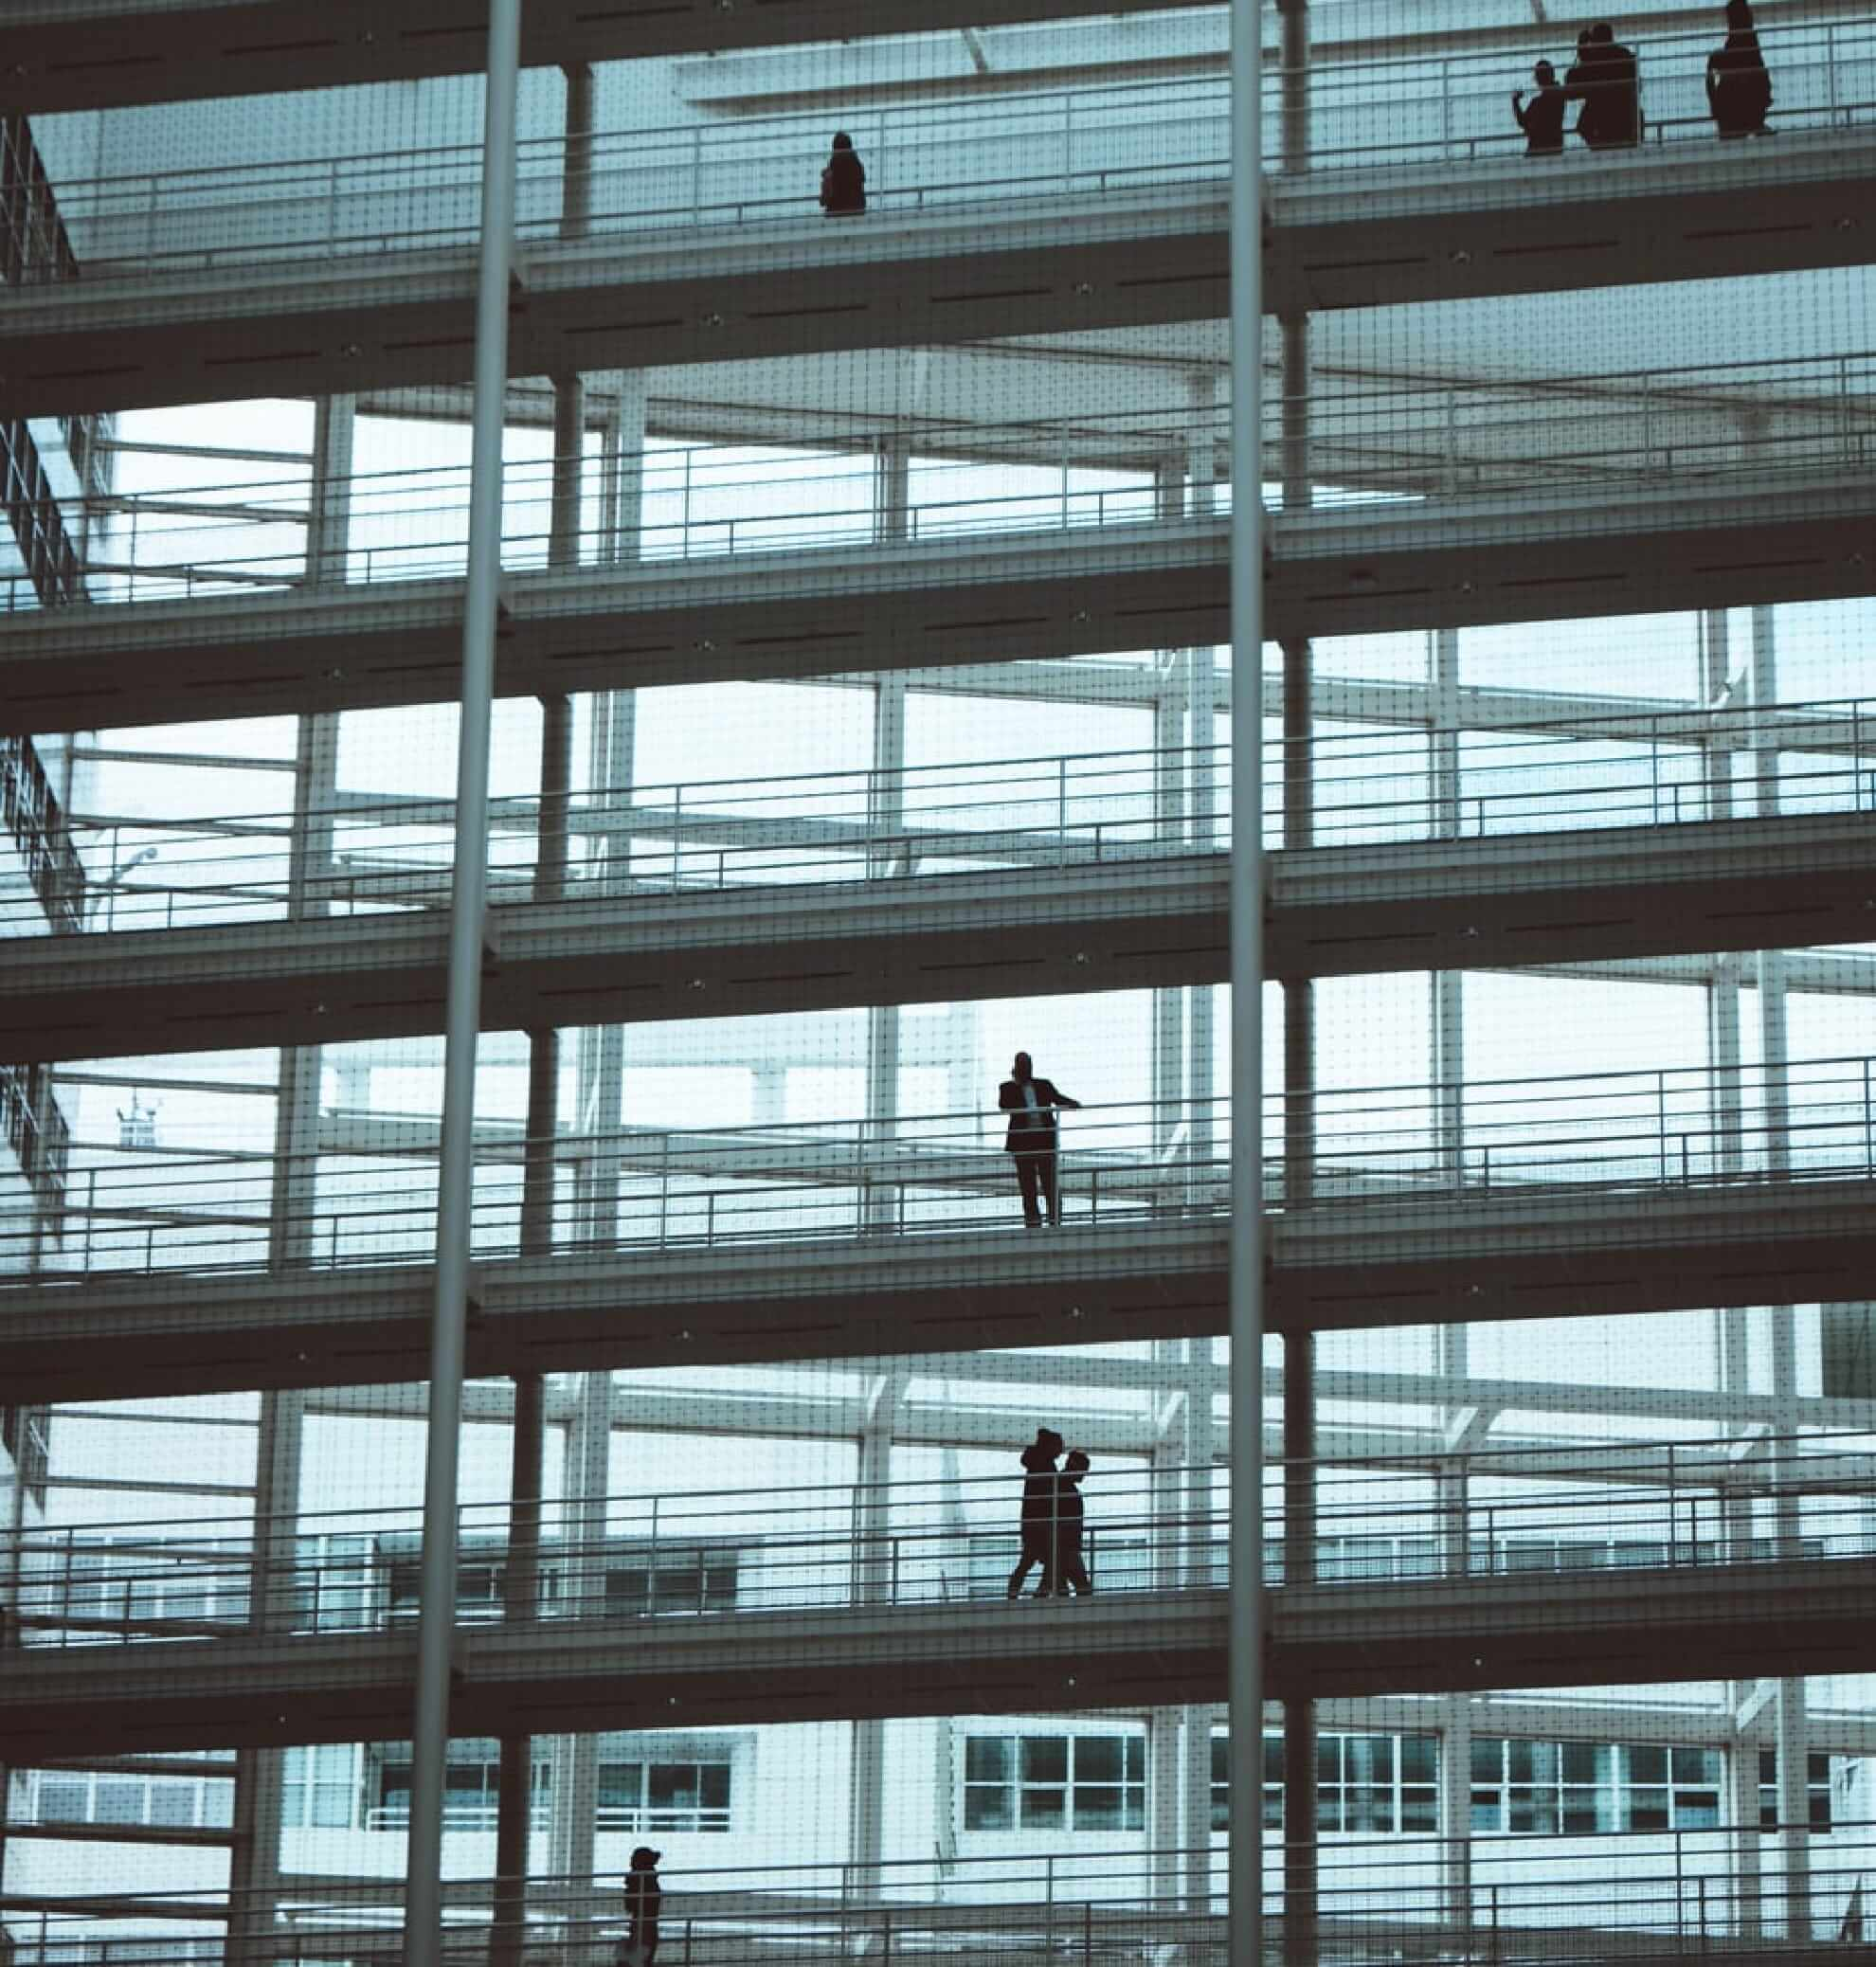 People standing on different floors in building